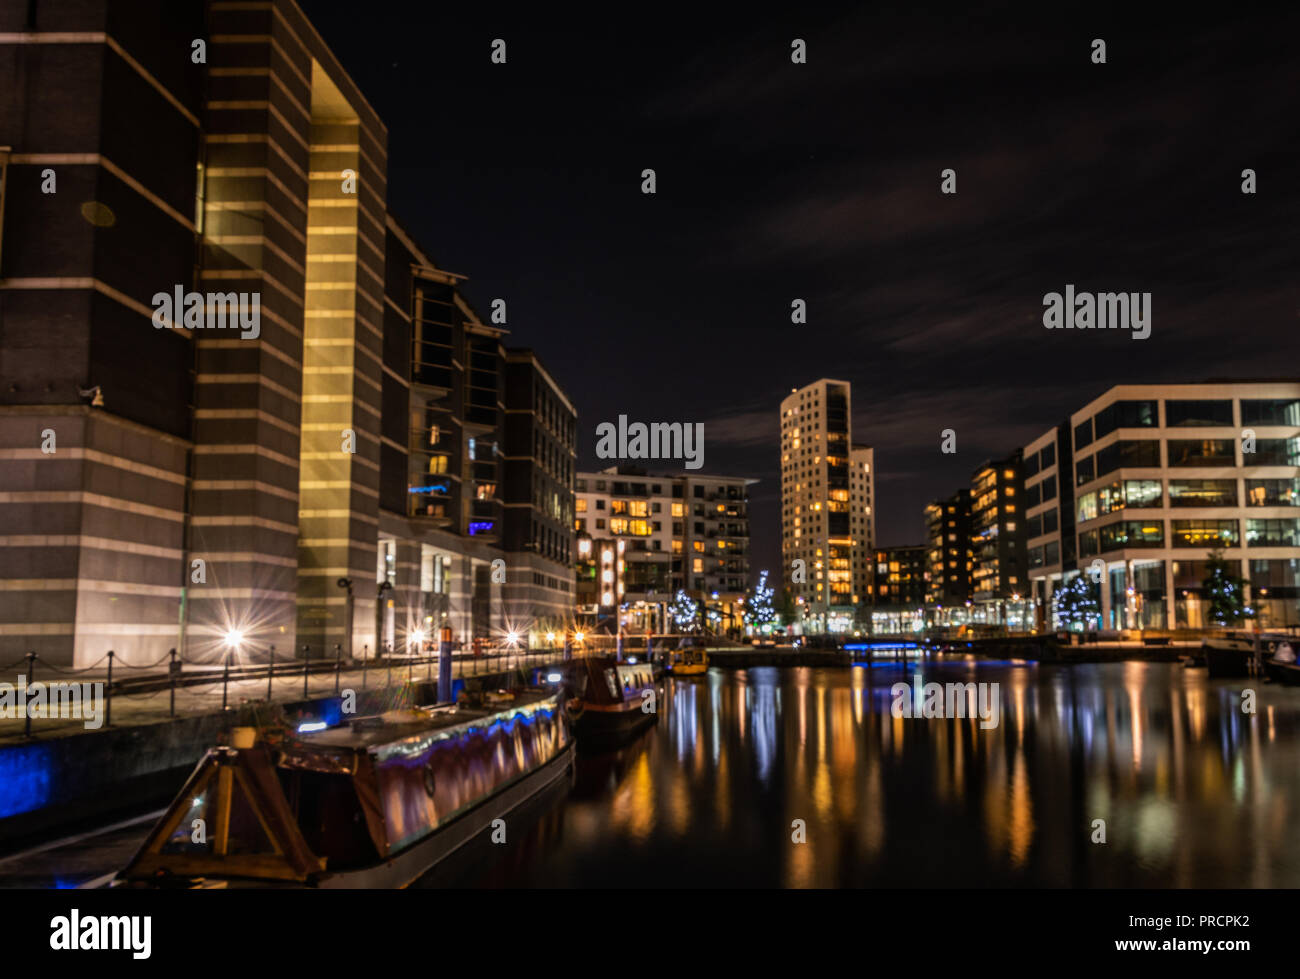 Clarence dock - Stock Image